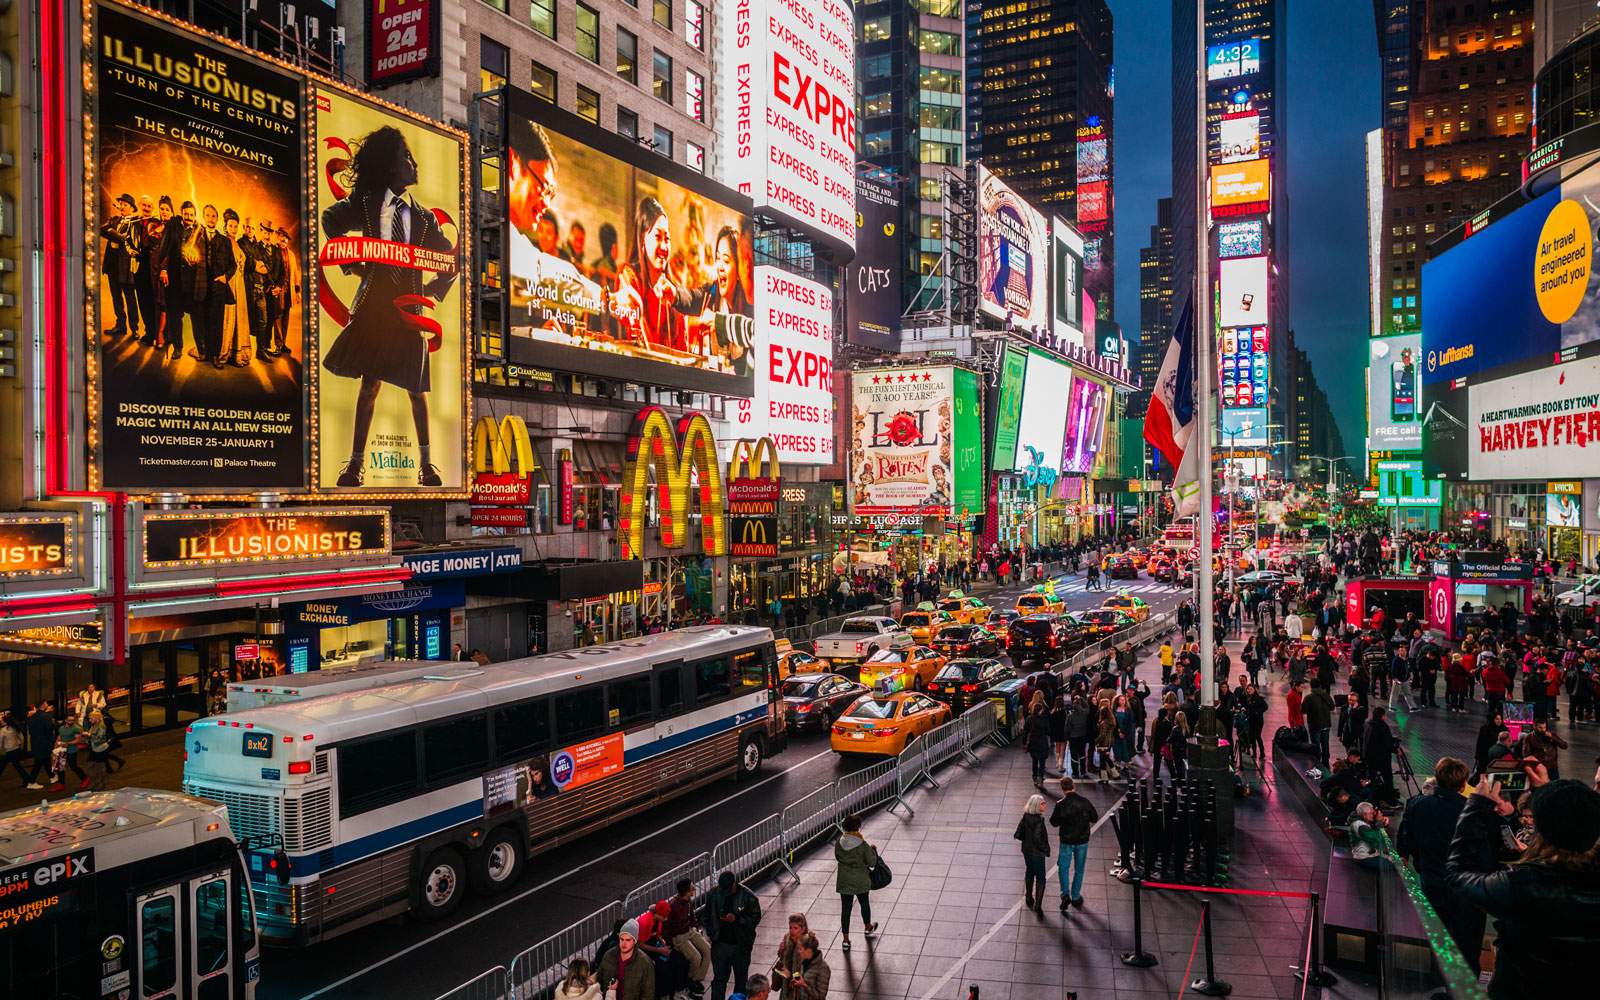 New York City Just Saw Its Highest Number of Tourists Yet